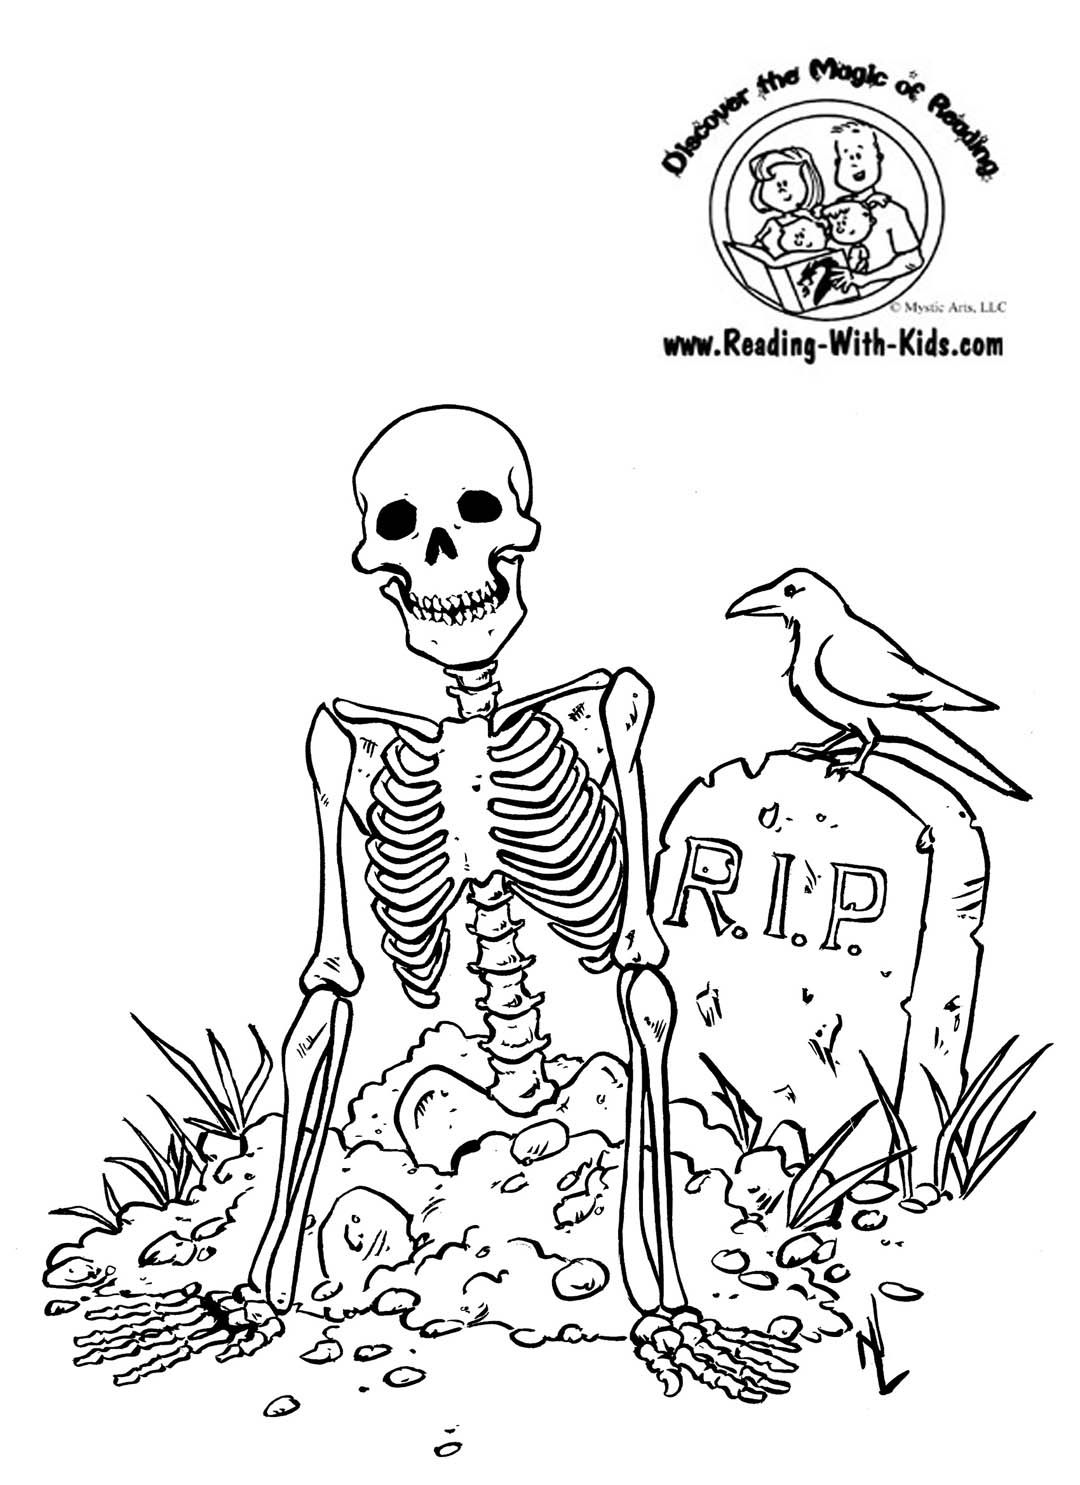 Http Www Reading With Kids Com Images Skeleton Halloween Coloring Pages Free Halloween Coloring Pages Halloween Coloring Pages Printable Scary Coloring Pages